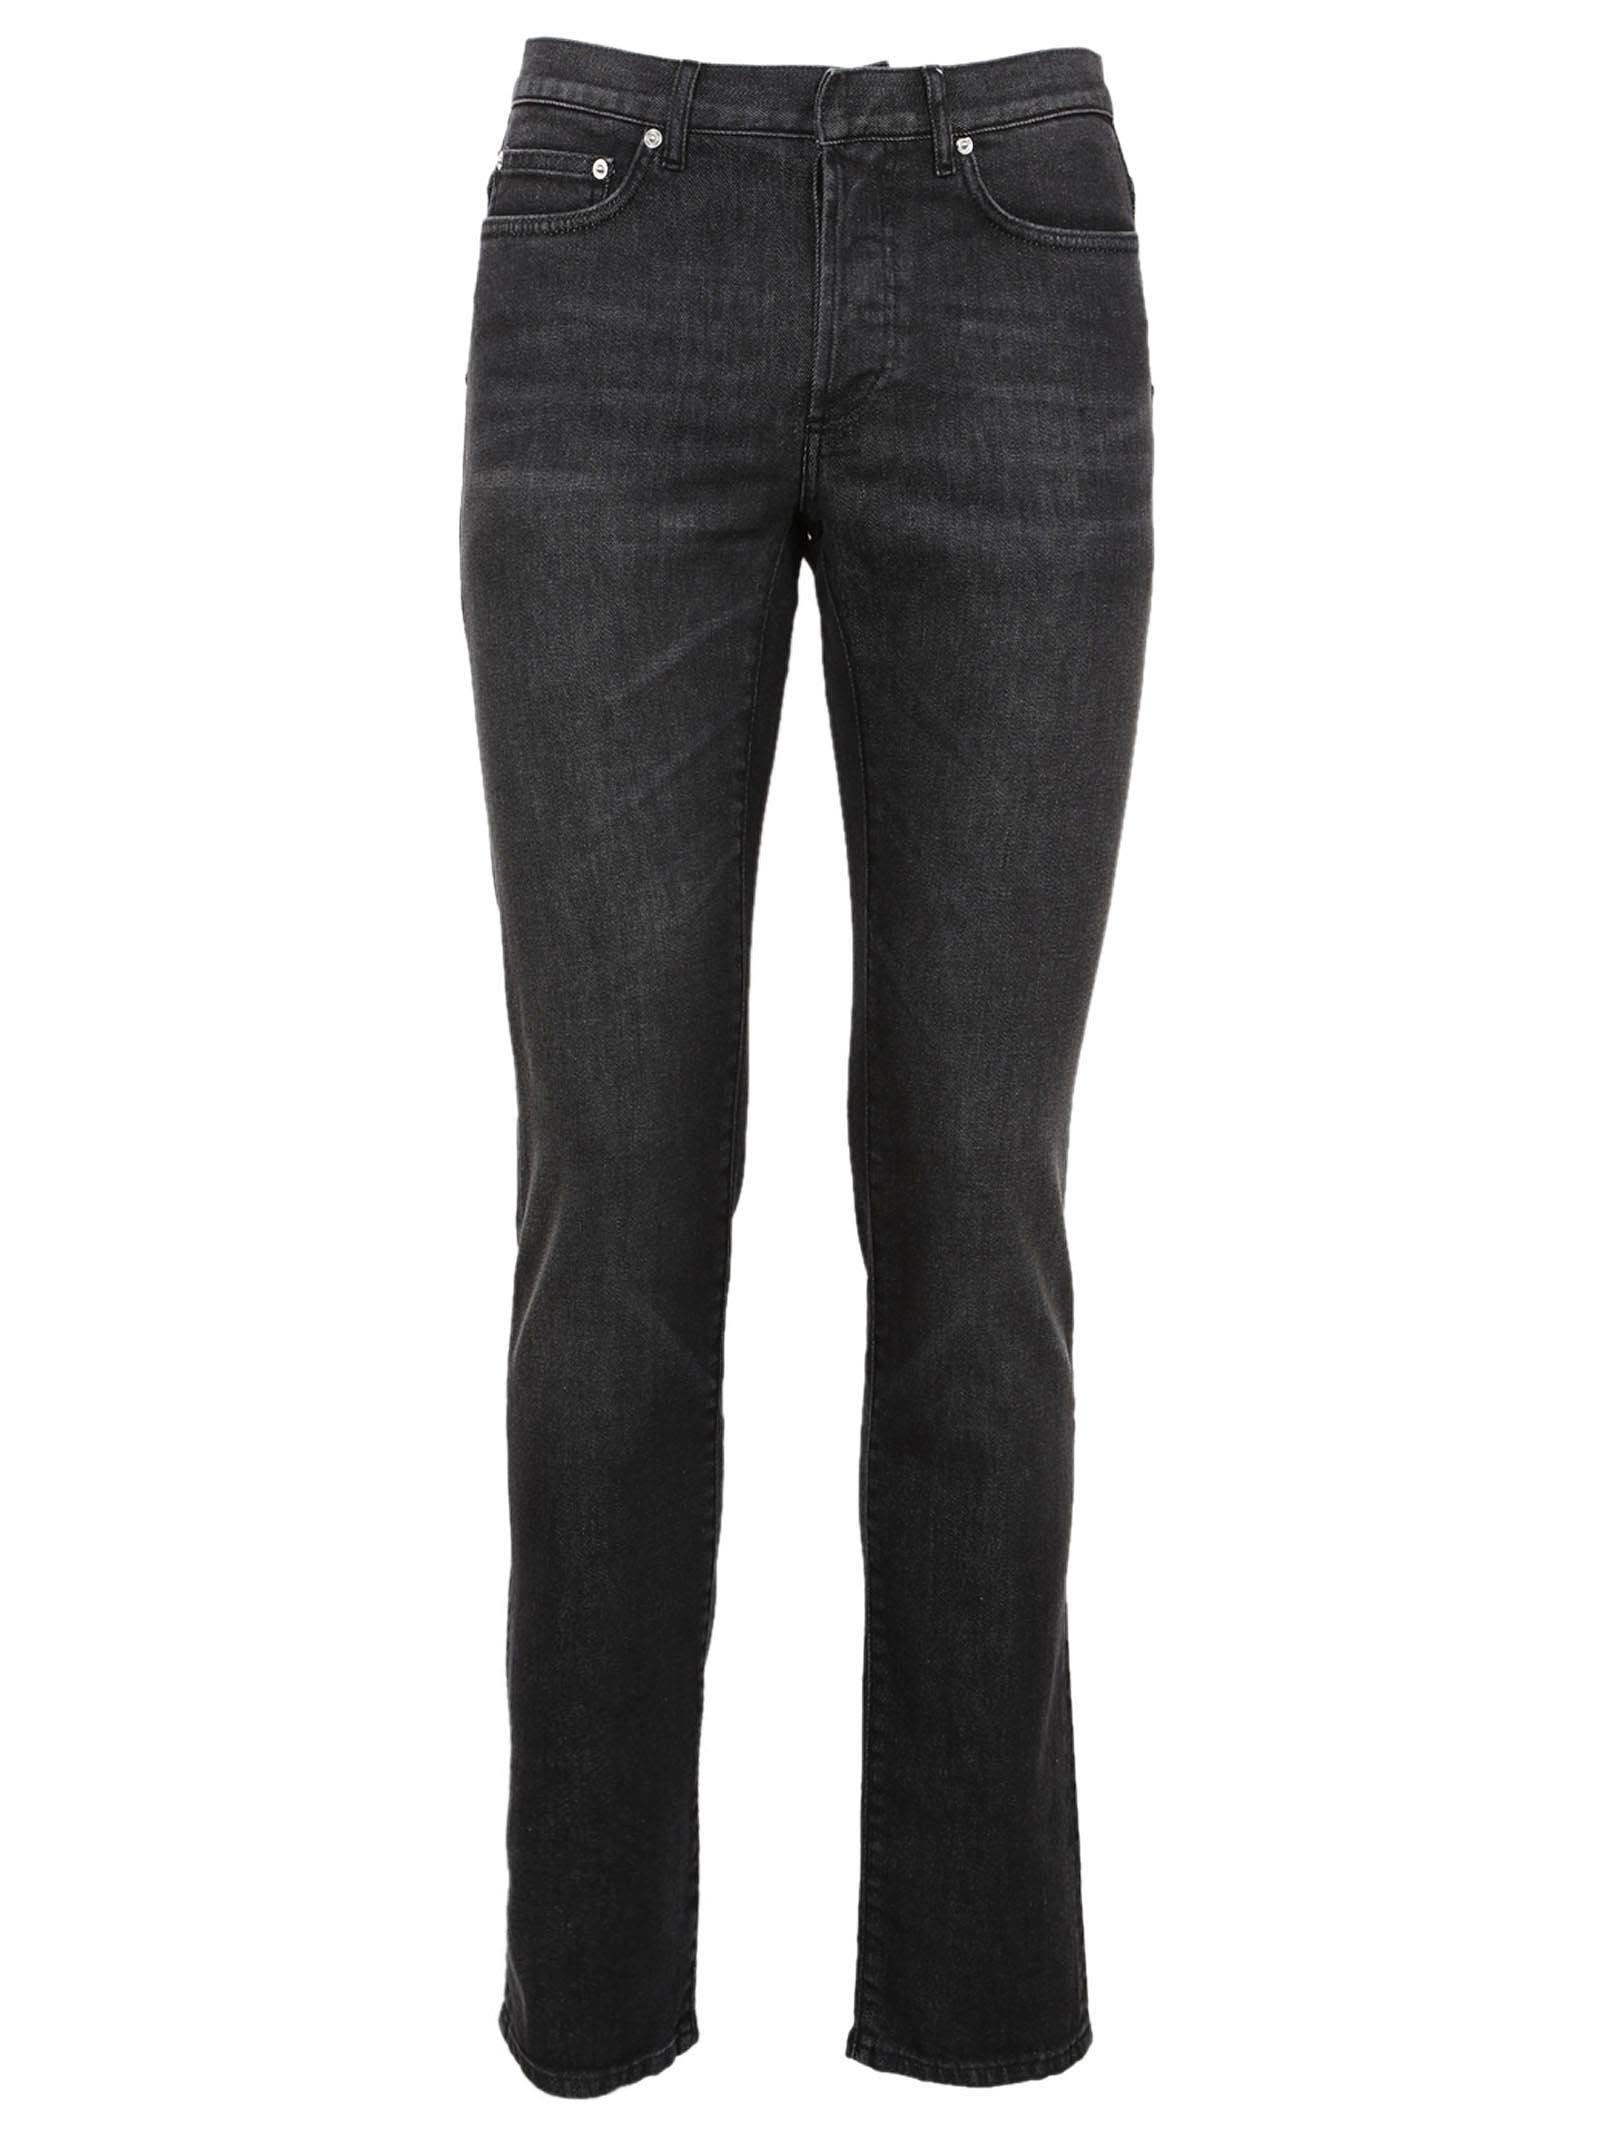 dior homme dior homme classic skinny jeans antracite men 39 s jeans italist. Black Bedroom Furniture Sets. Home Design Ideas